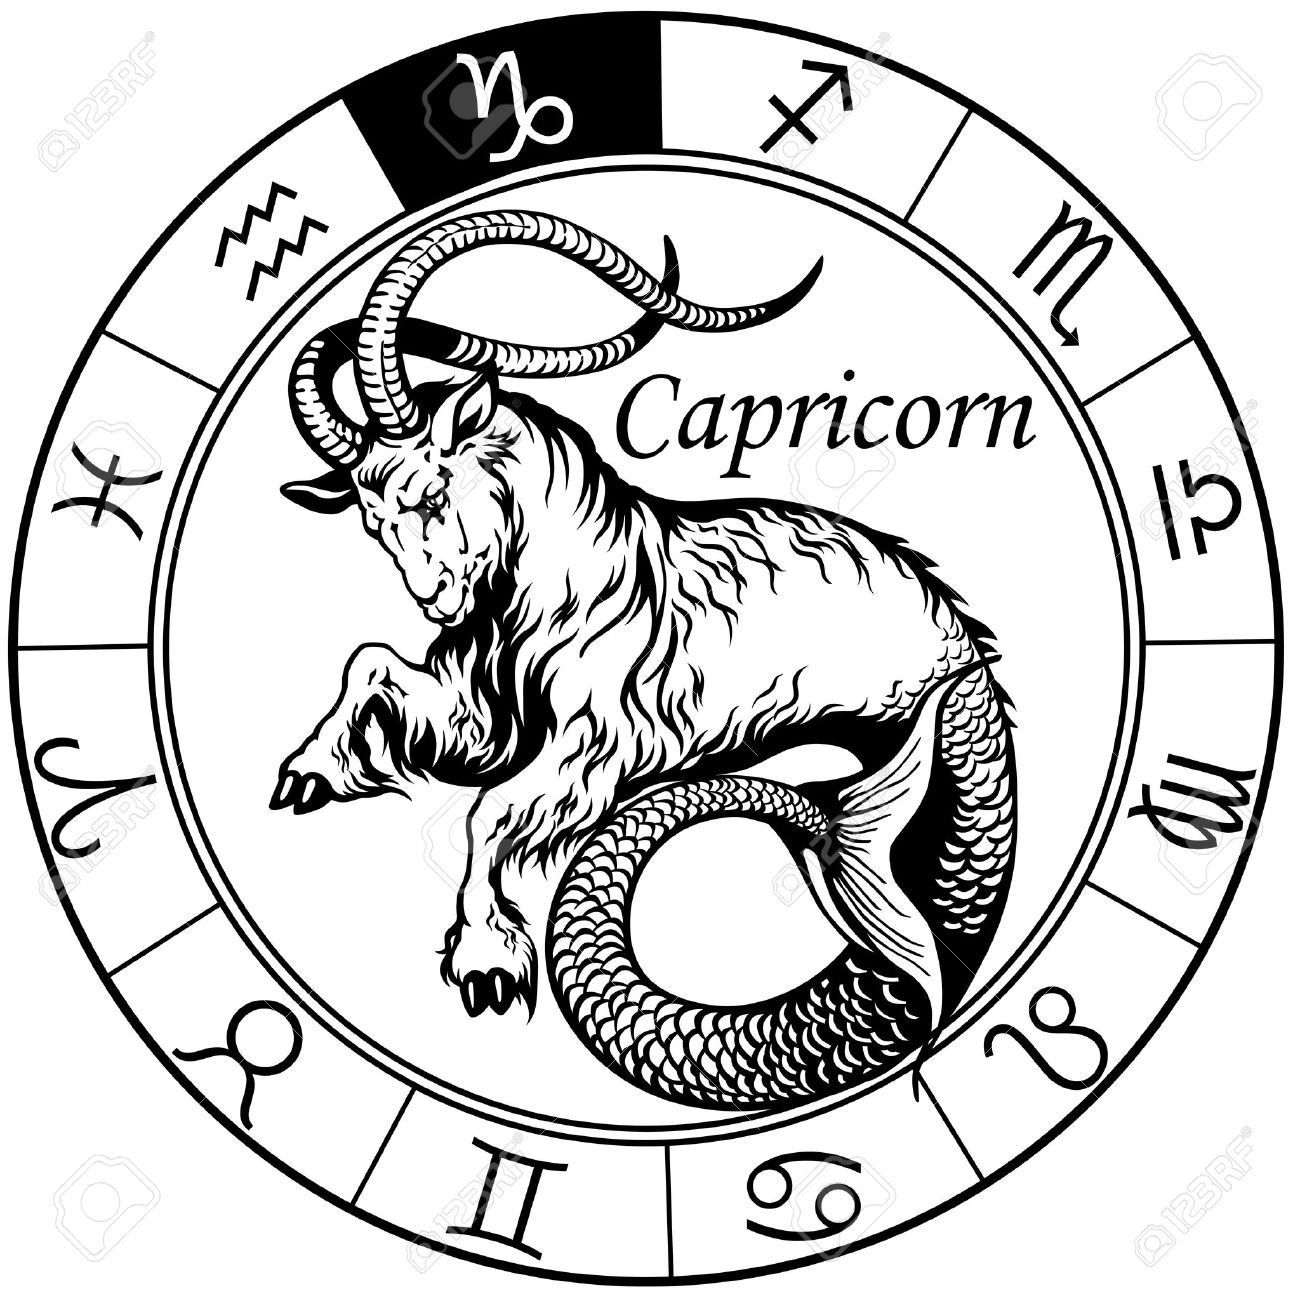 50 Best Capricorn Tattoo Designs With Meanings For Men Ideas And Designs